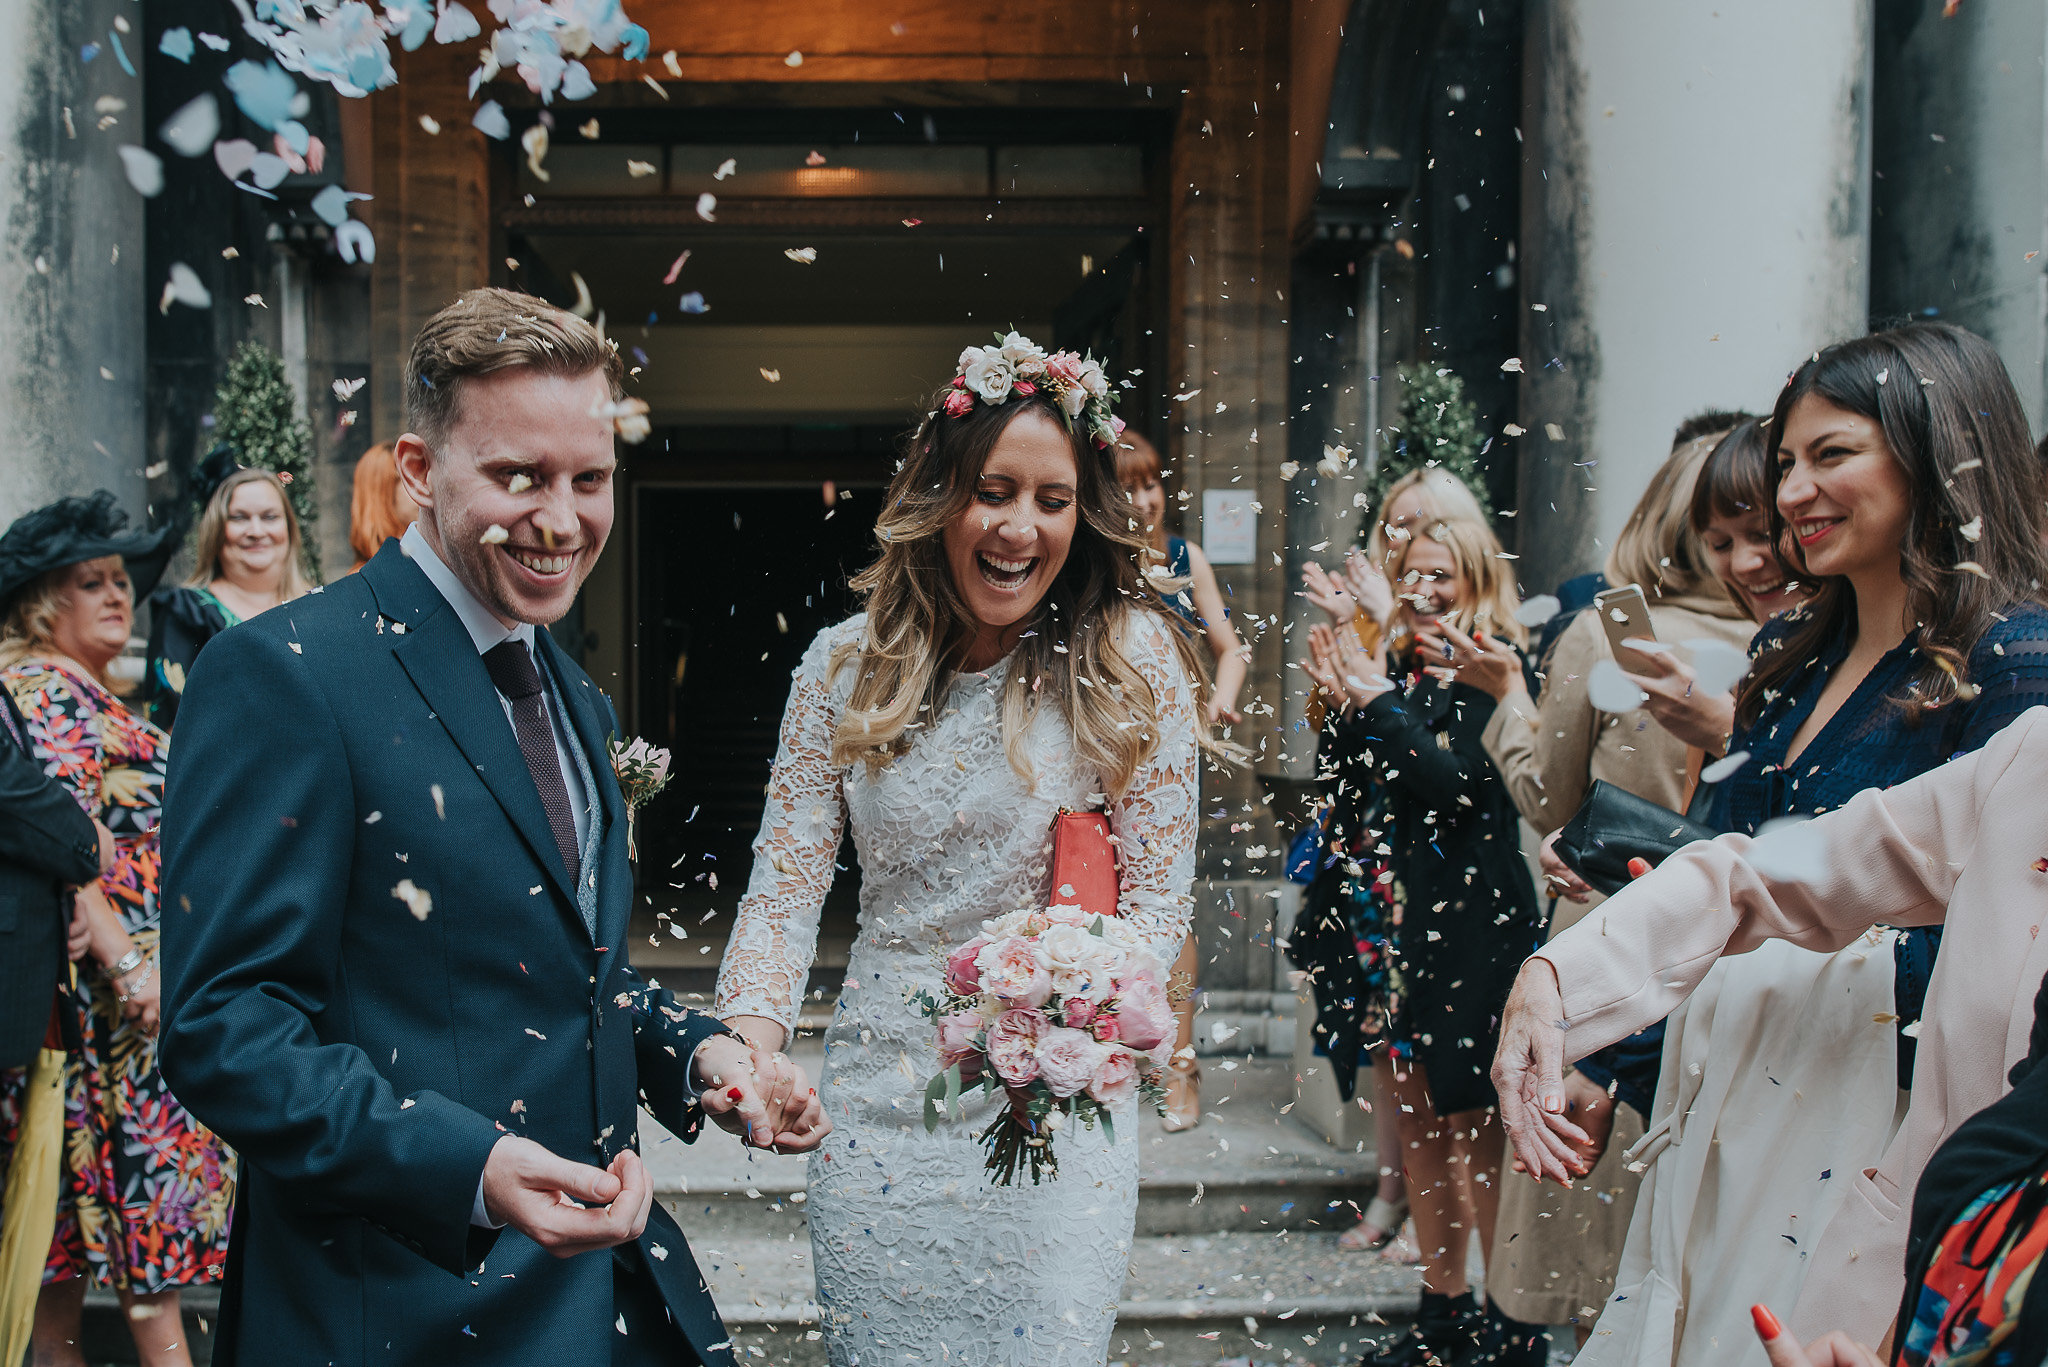 Bride and groom confetti photograph outside Stoke Newington Town Hall